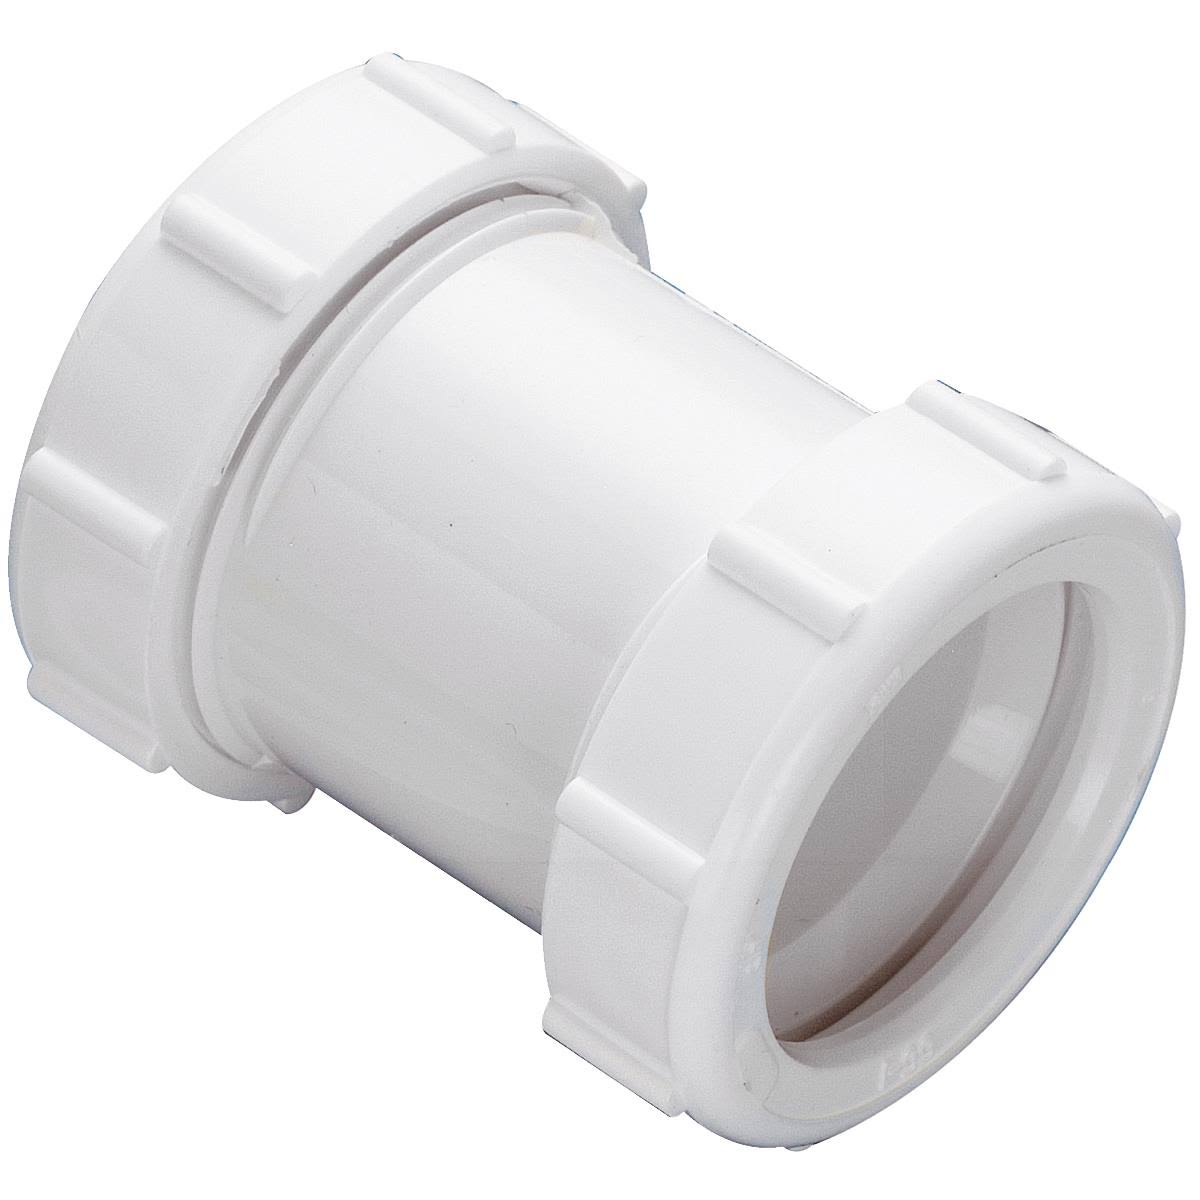 Do it Plastic Straight Slip-joint Extension Coupling